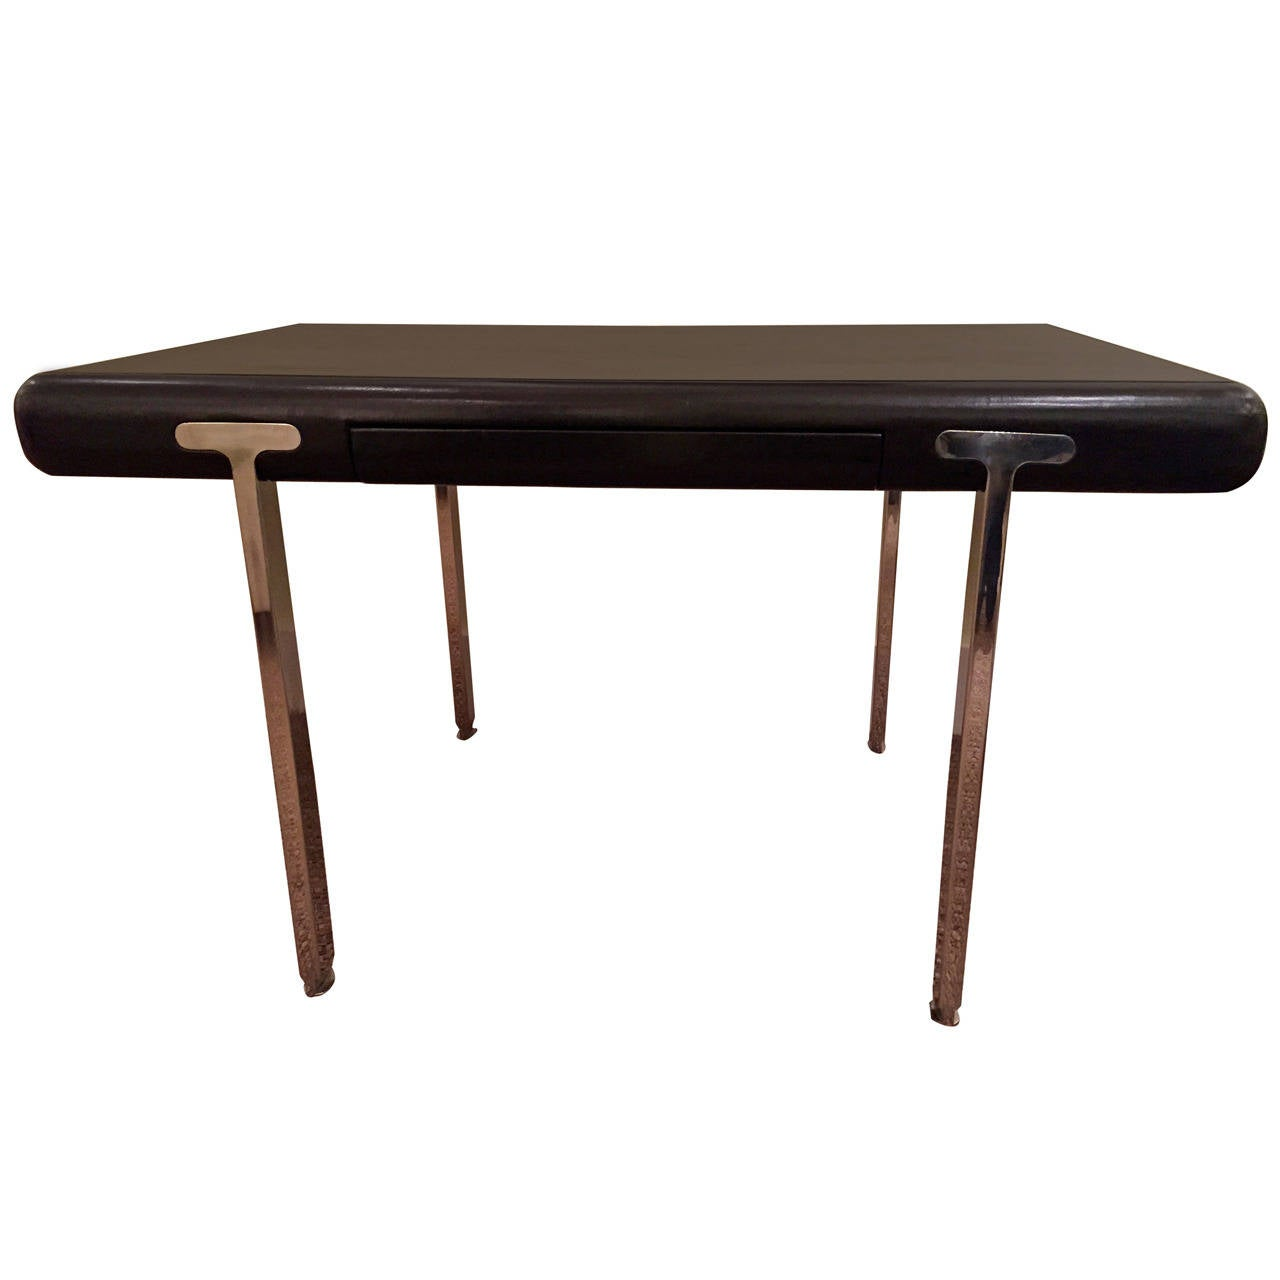 Black Leather and Stainless Steel Desk by John Mascheroni